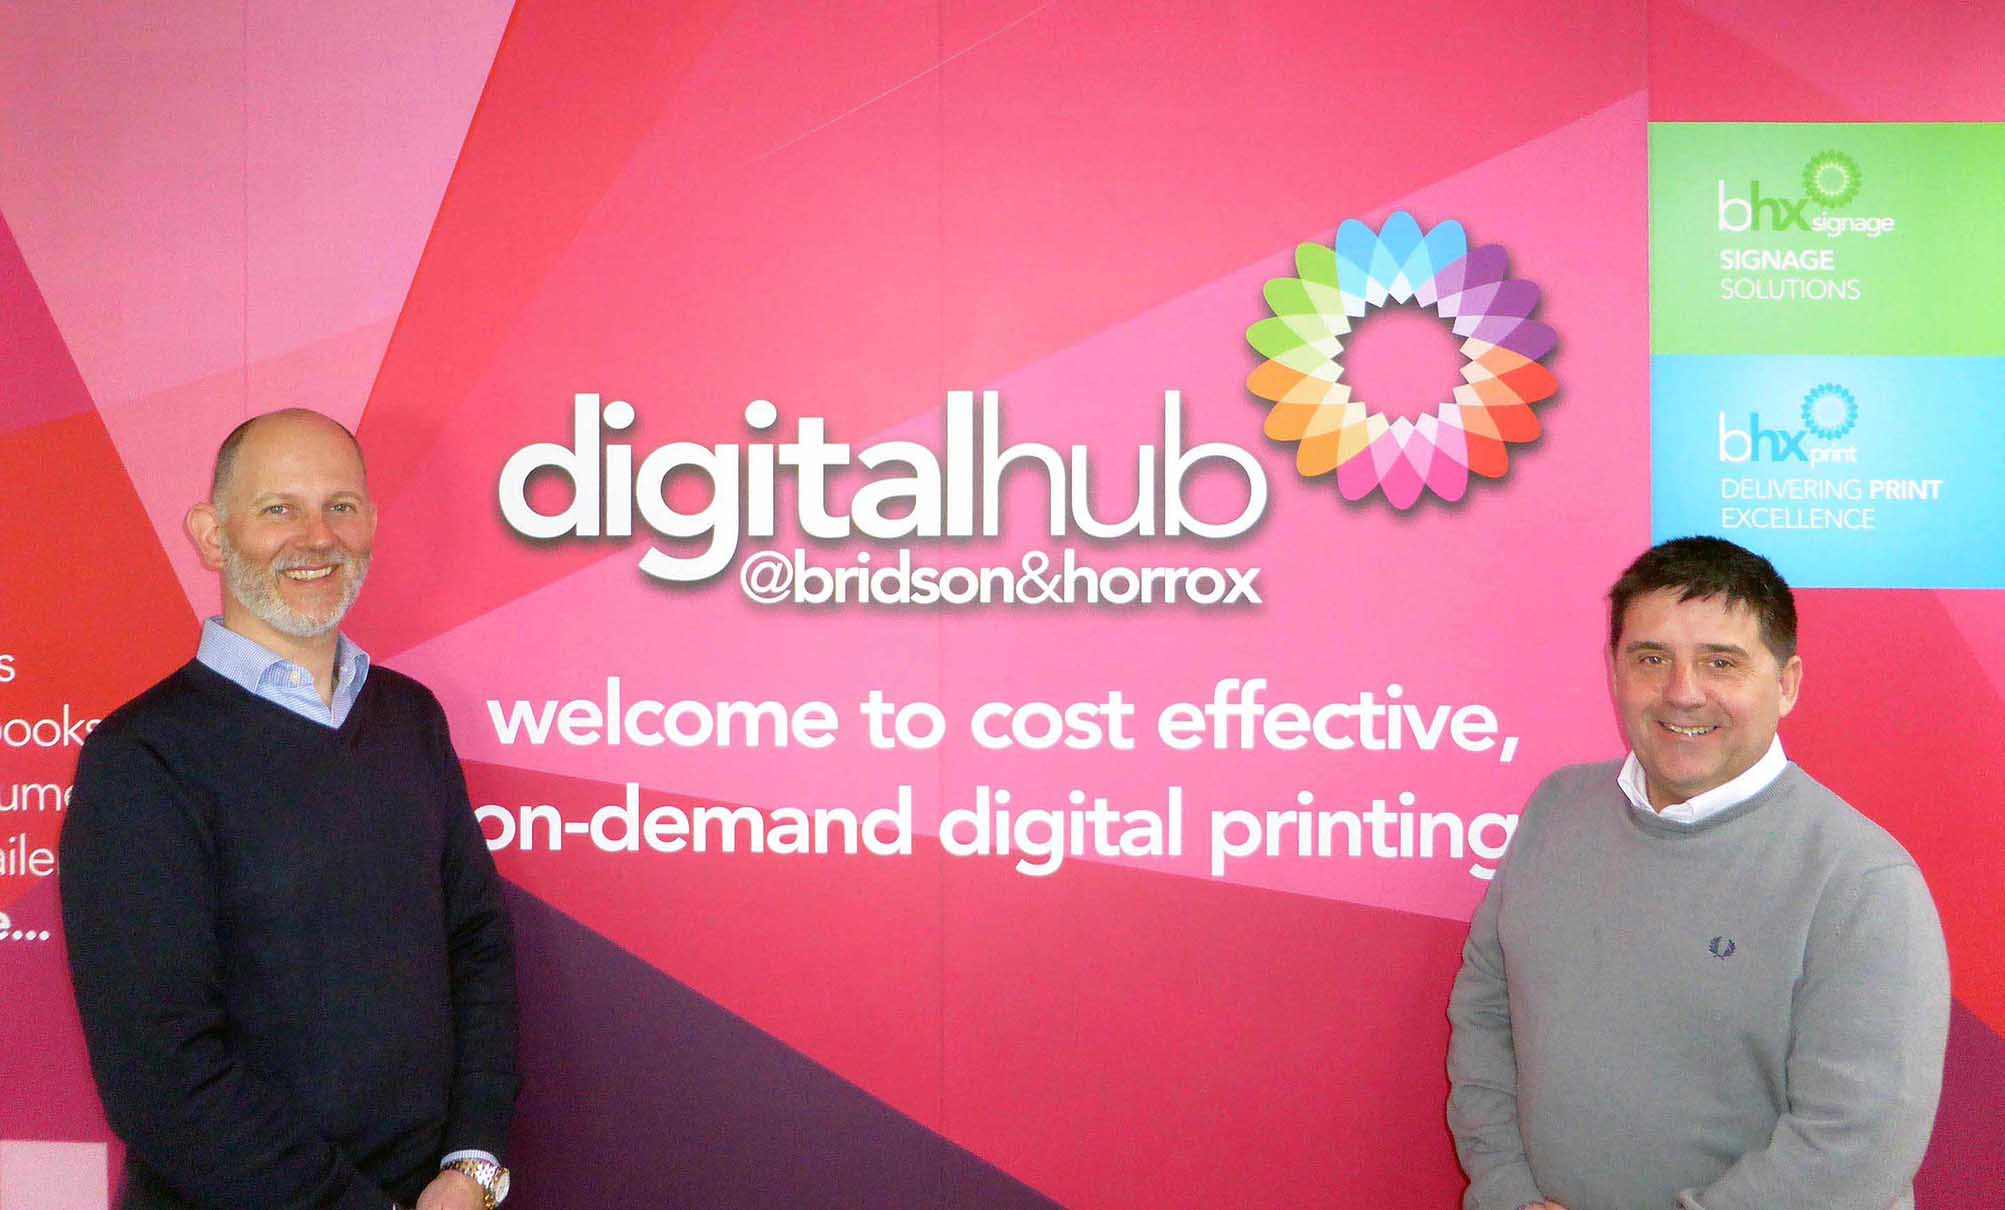 Darren Horrox and Tommy Crowe launch the new Digital Hub.